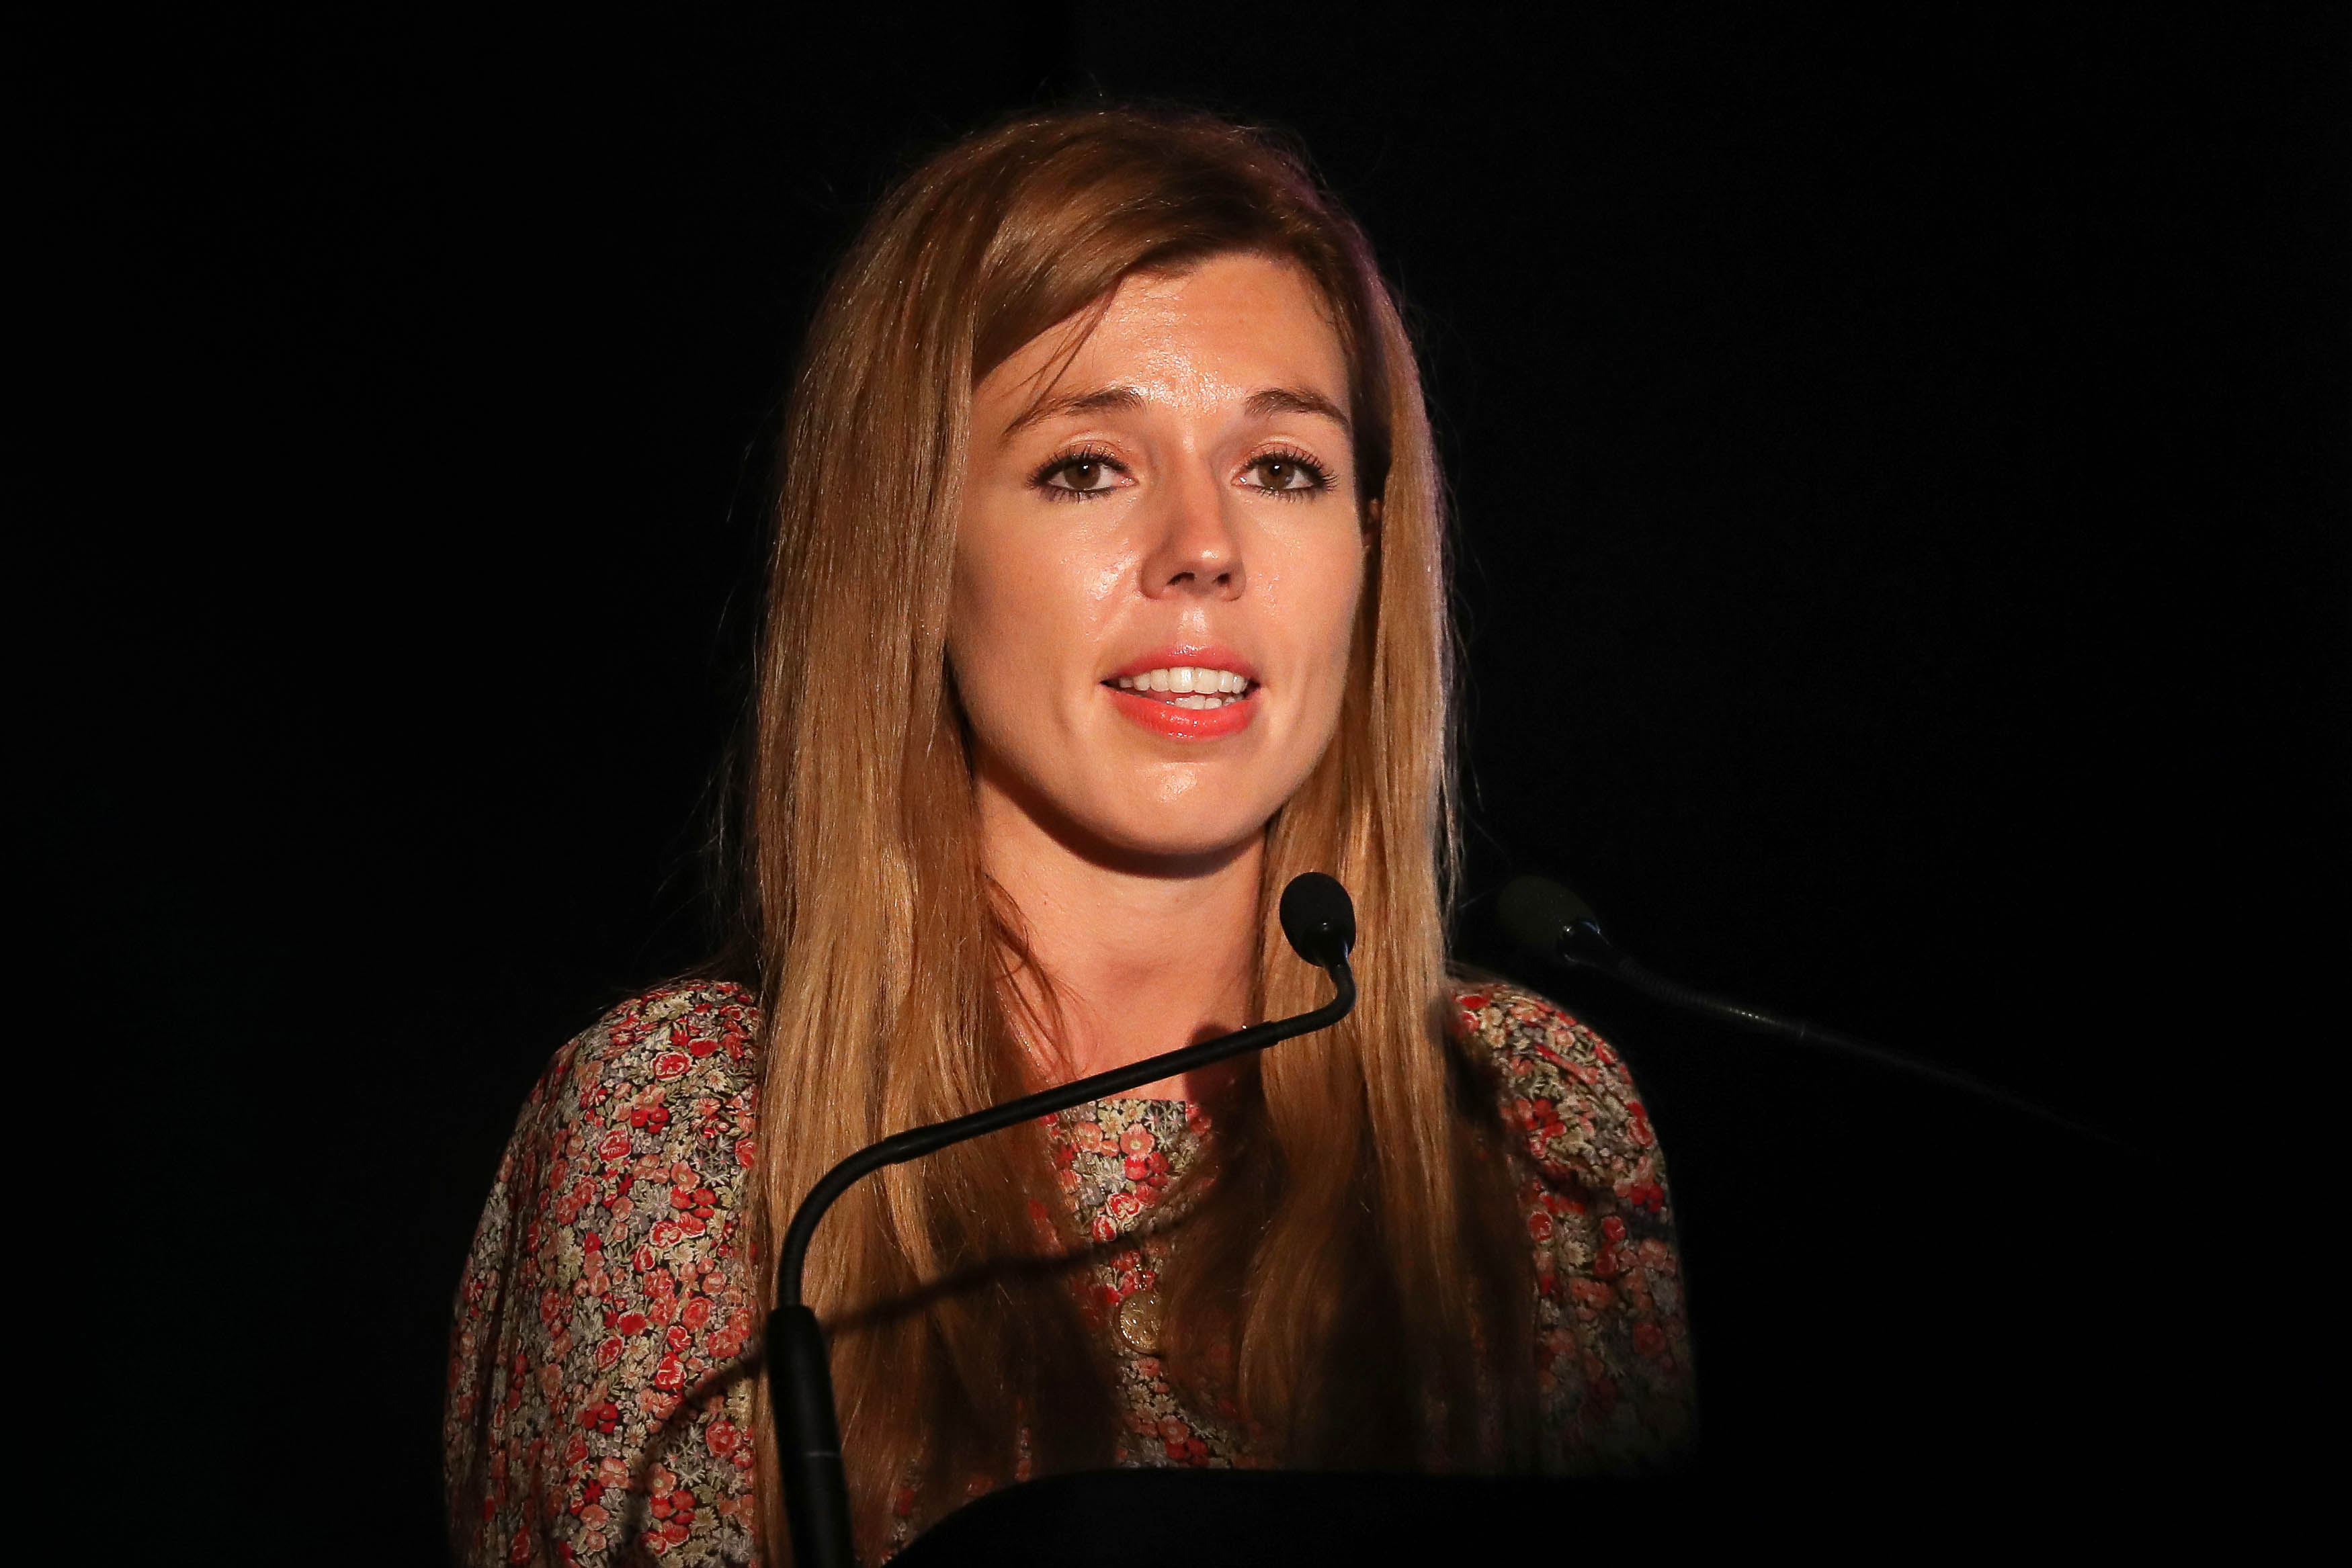 Carrie Symonds, the partner of Prime Minister Boris Johnson, gives a speech at Birdfair, an environmental awareness conference, at the Rutland Water Nature Reserve in Egleton near Oakham.